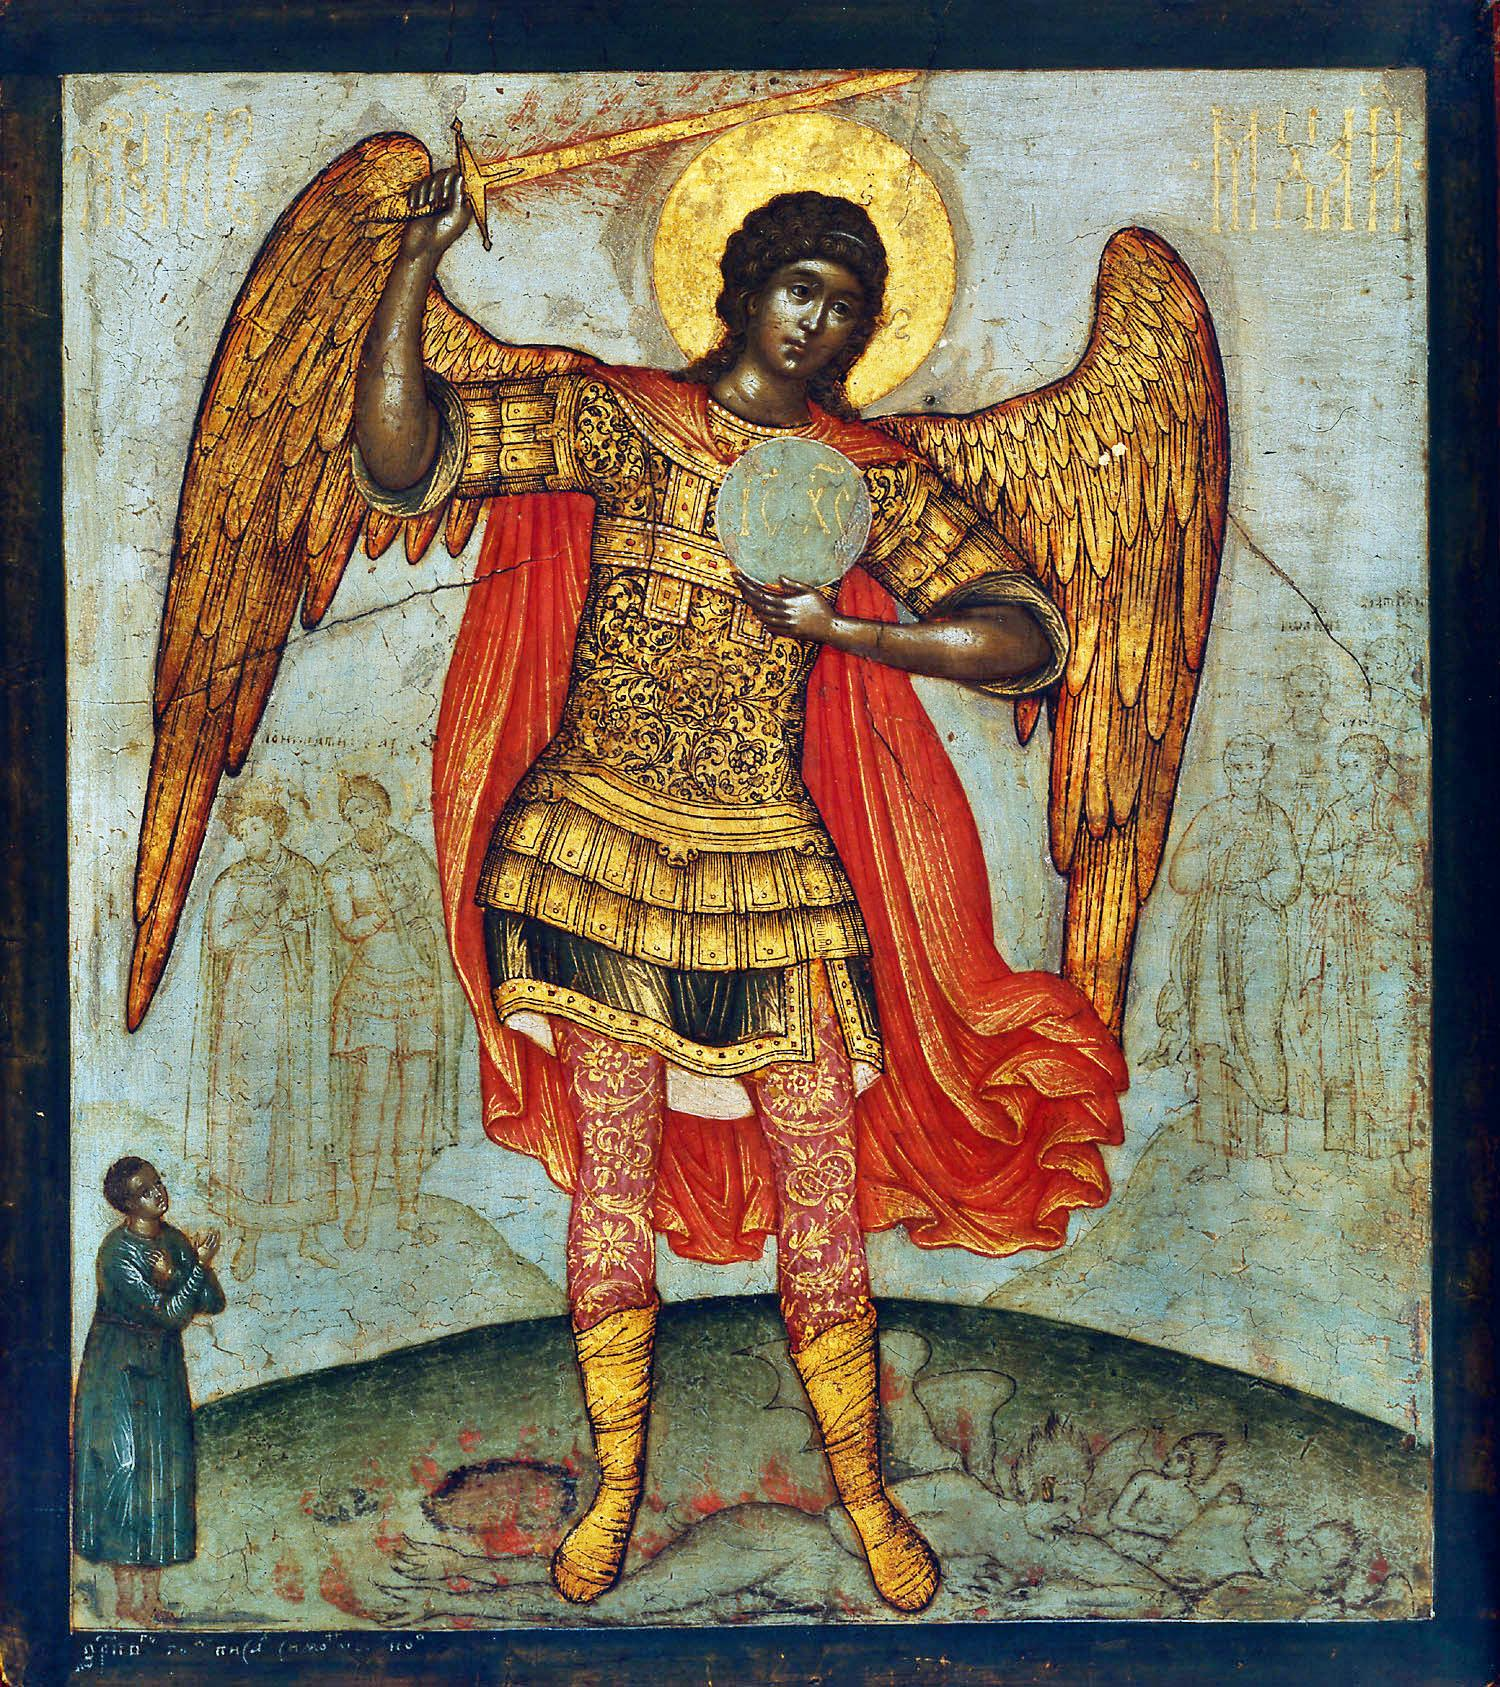 [Obrazek: Simon_Ushakov_Archangel_Mikhail_and_Devil.JPG]